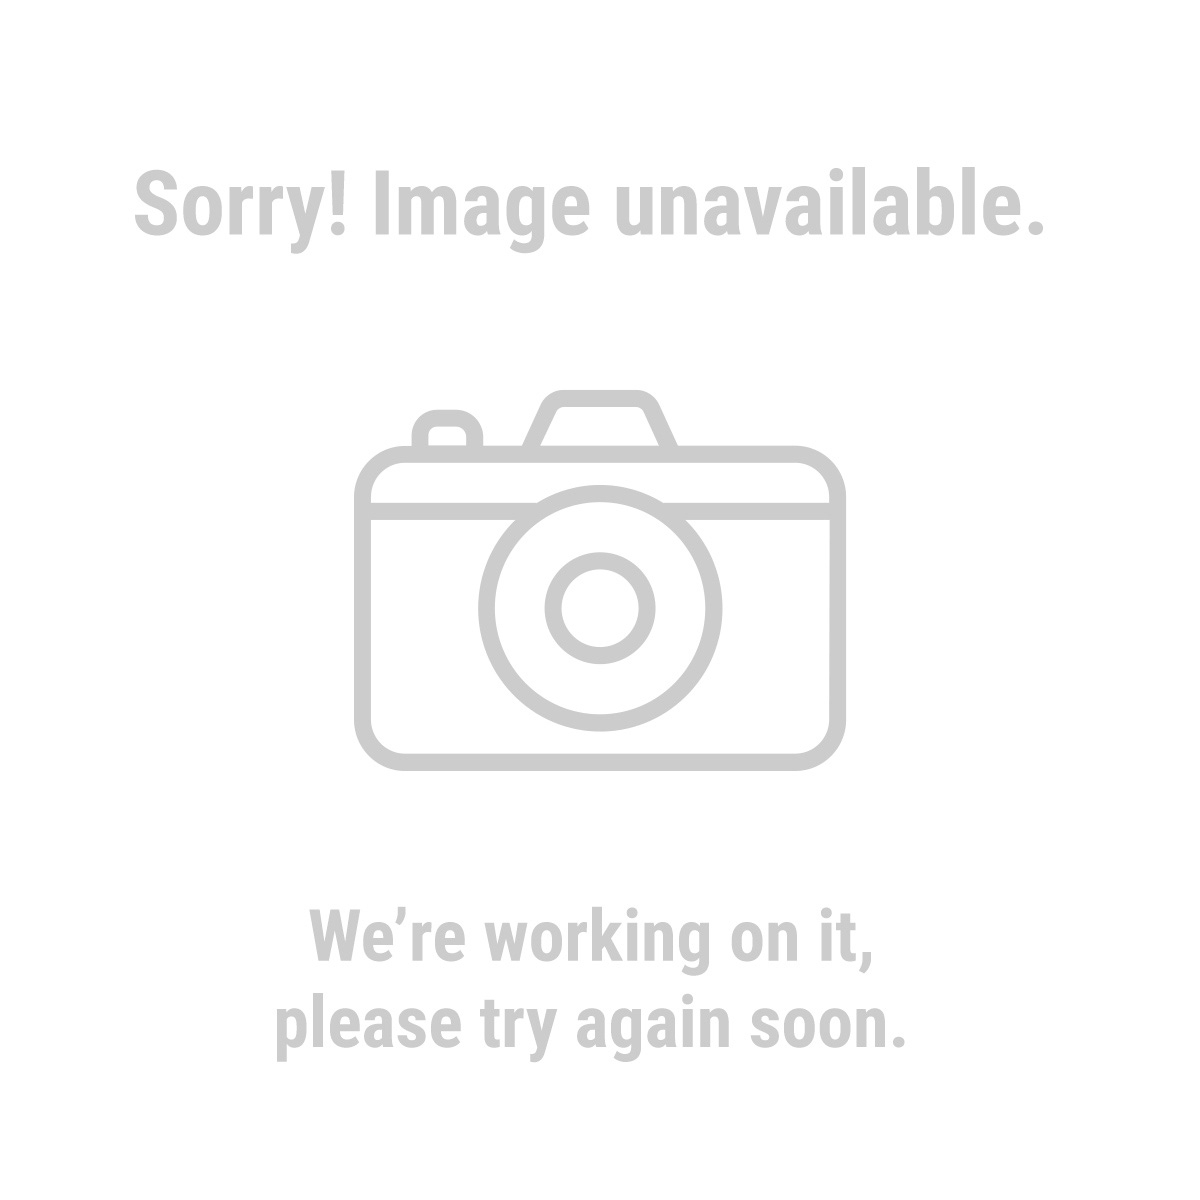 Pittsburgh 93984 Infrared Thermometer